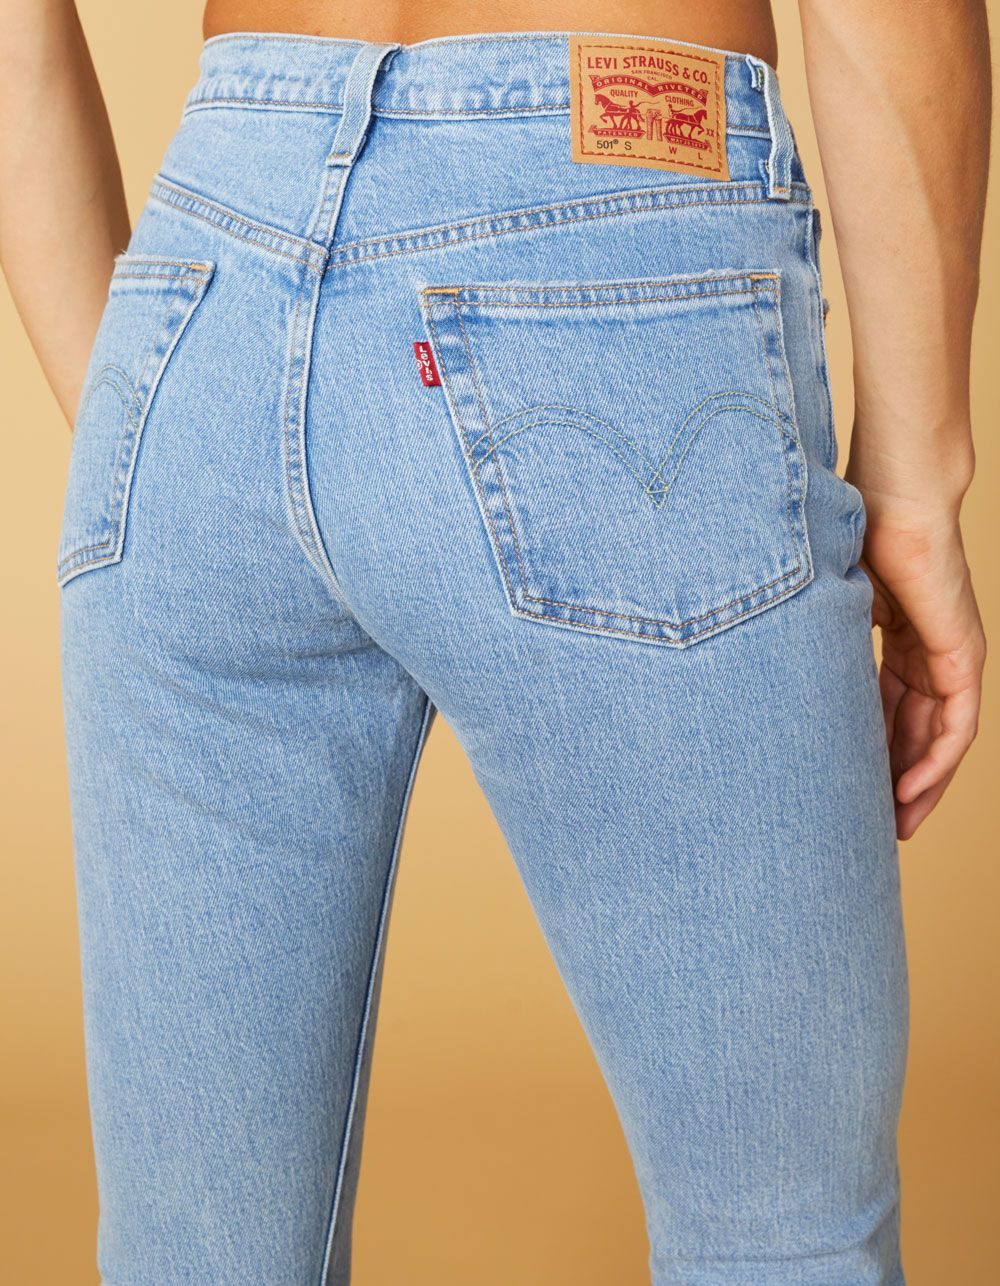 2020 New Women Jeans Winter Casual Outfits For Ladies Casual Summer Outfits For 50 Year Old Woman Moleskin Pants Straight Fit